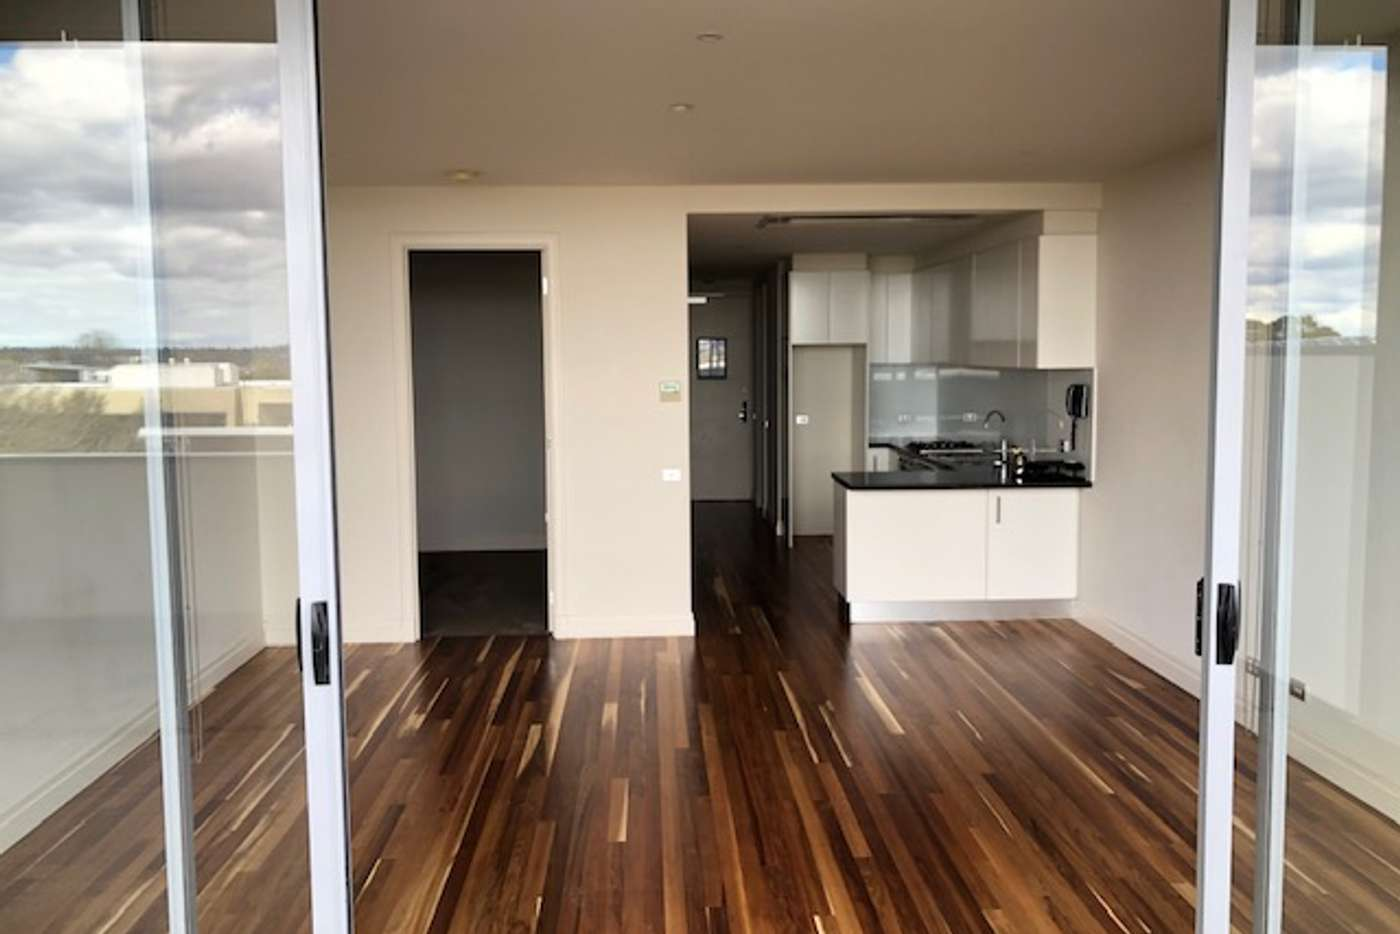 Main view of Homely apartment listing, 211/91- 93 Tram Rd, Doncaster VIC 3108